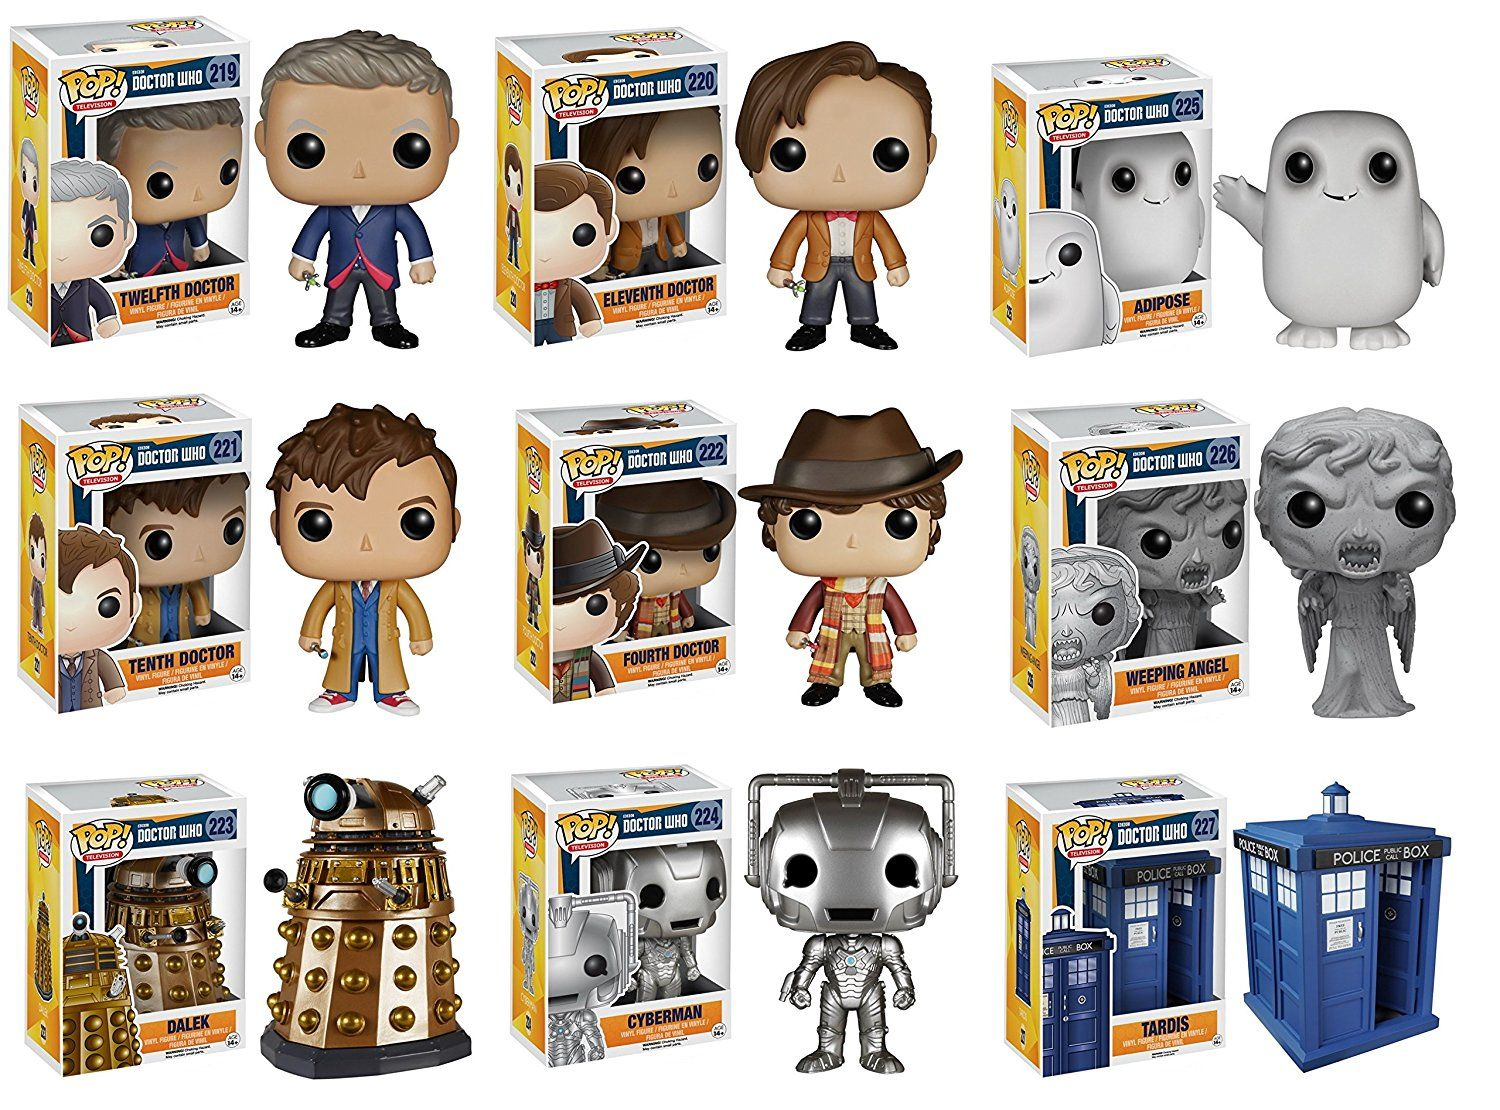 Amazon Com Funko Doctor Who Dr 10 Dr 11 Dr 12 Dr 4 Adipose Cyberman Dalek Weeping Angel And 6 Tardis Vinyl Pop Act Vinyl Figures Funko Doctor Who